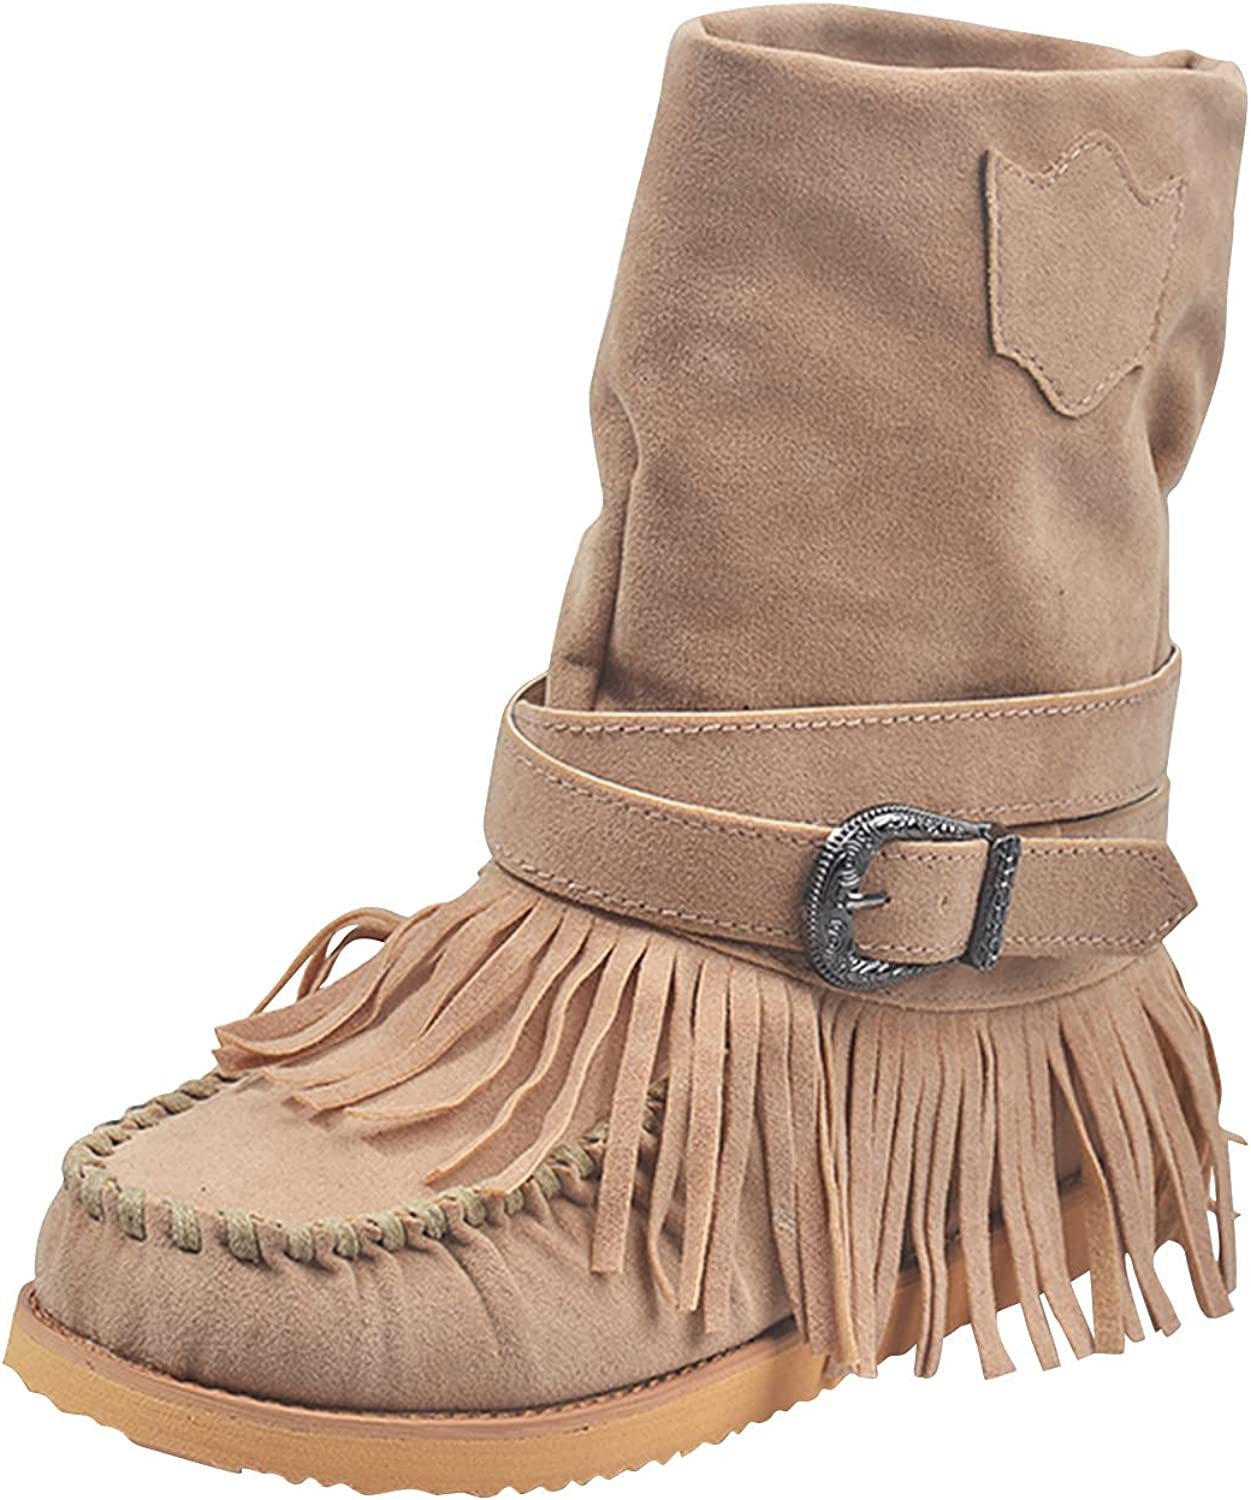 Fashion Khaki Boots For Women Winter New Work Boots For Women Co